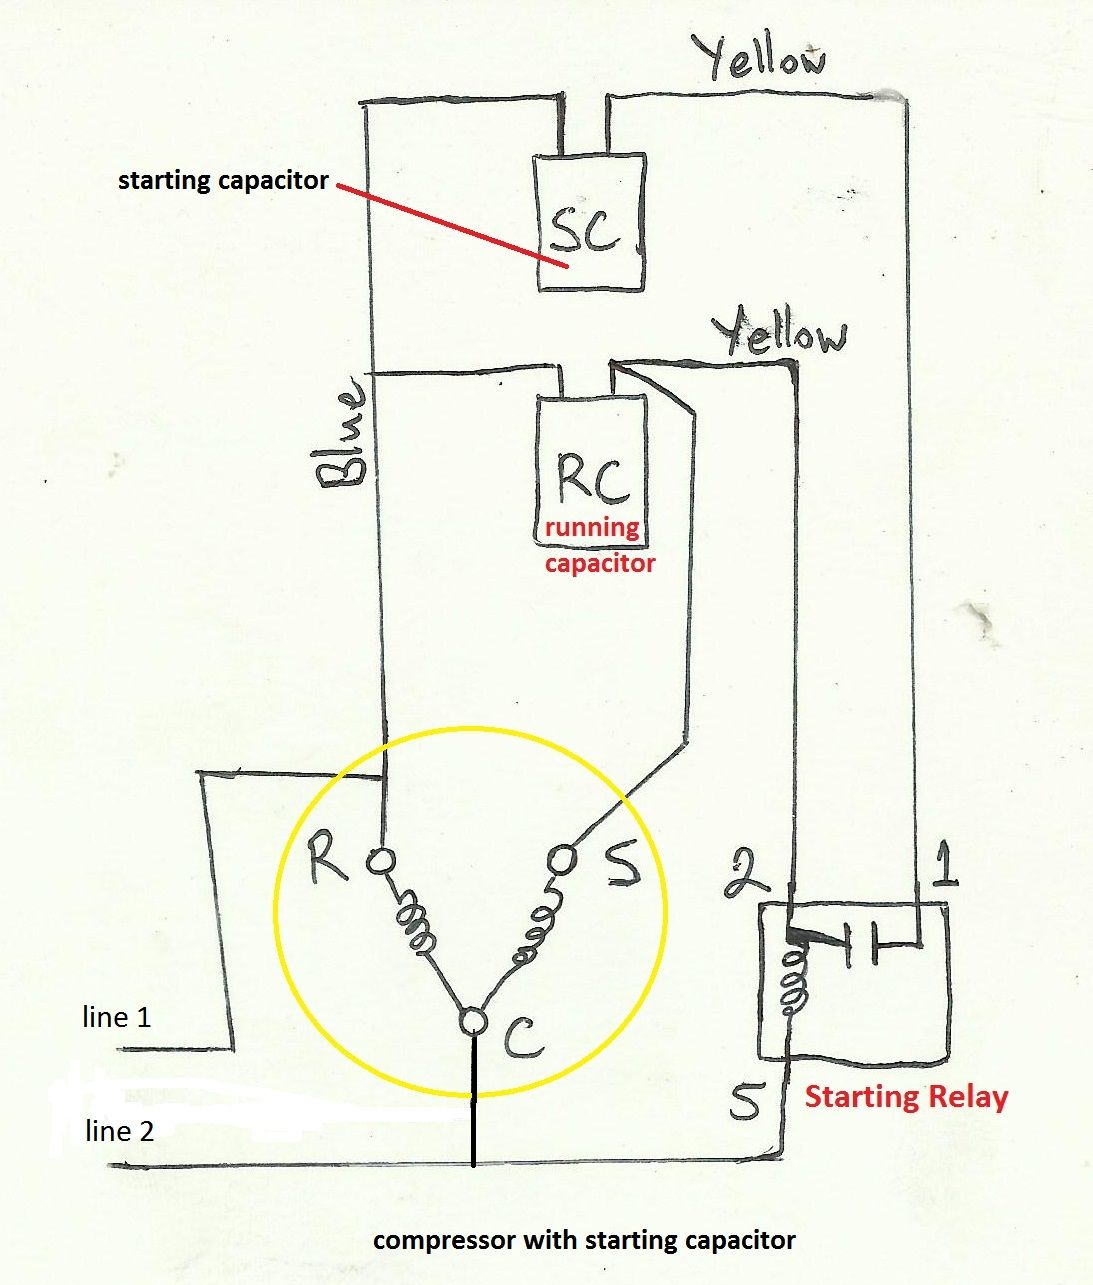 fan compressor wiring diagram wiring diagrams box kenmore refrigerator compressor wiring schematic ac condenser wiring diagram as well opinions about wiring diagram \\u2022 capacitors for compressor wiring diagram fan compressor wiring diagram